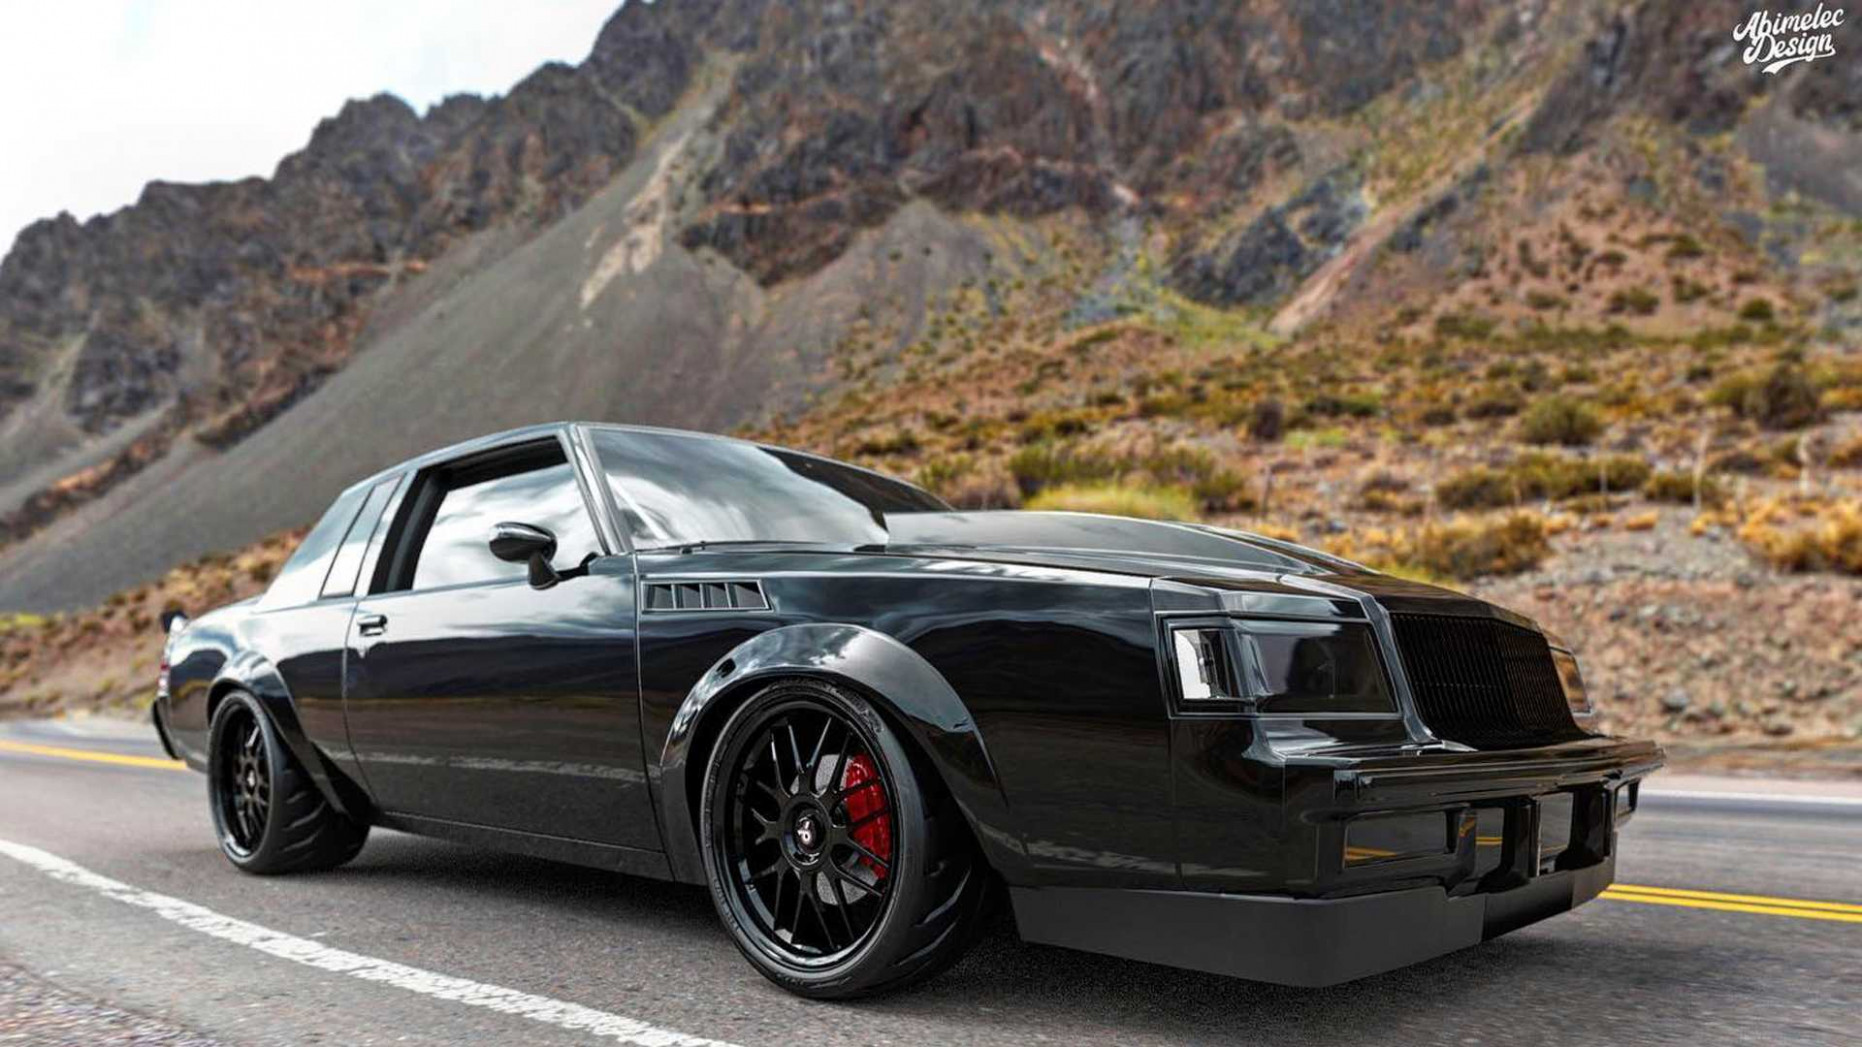 Speed Test Buick Regal Grand National 2022